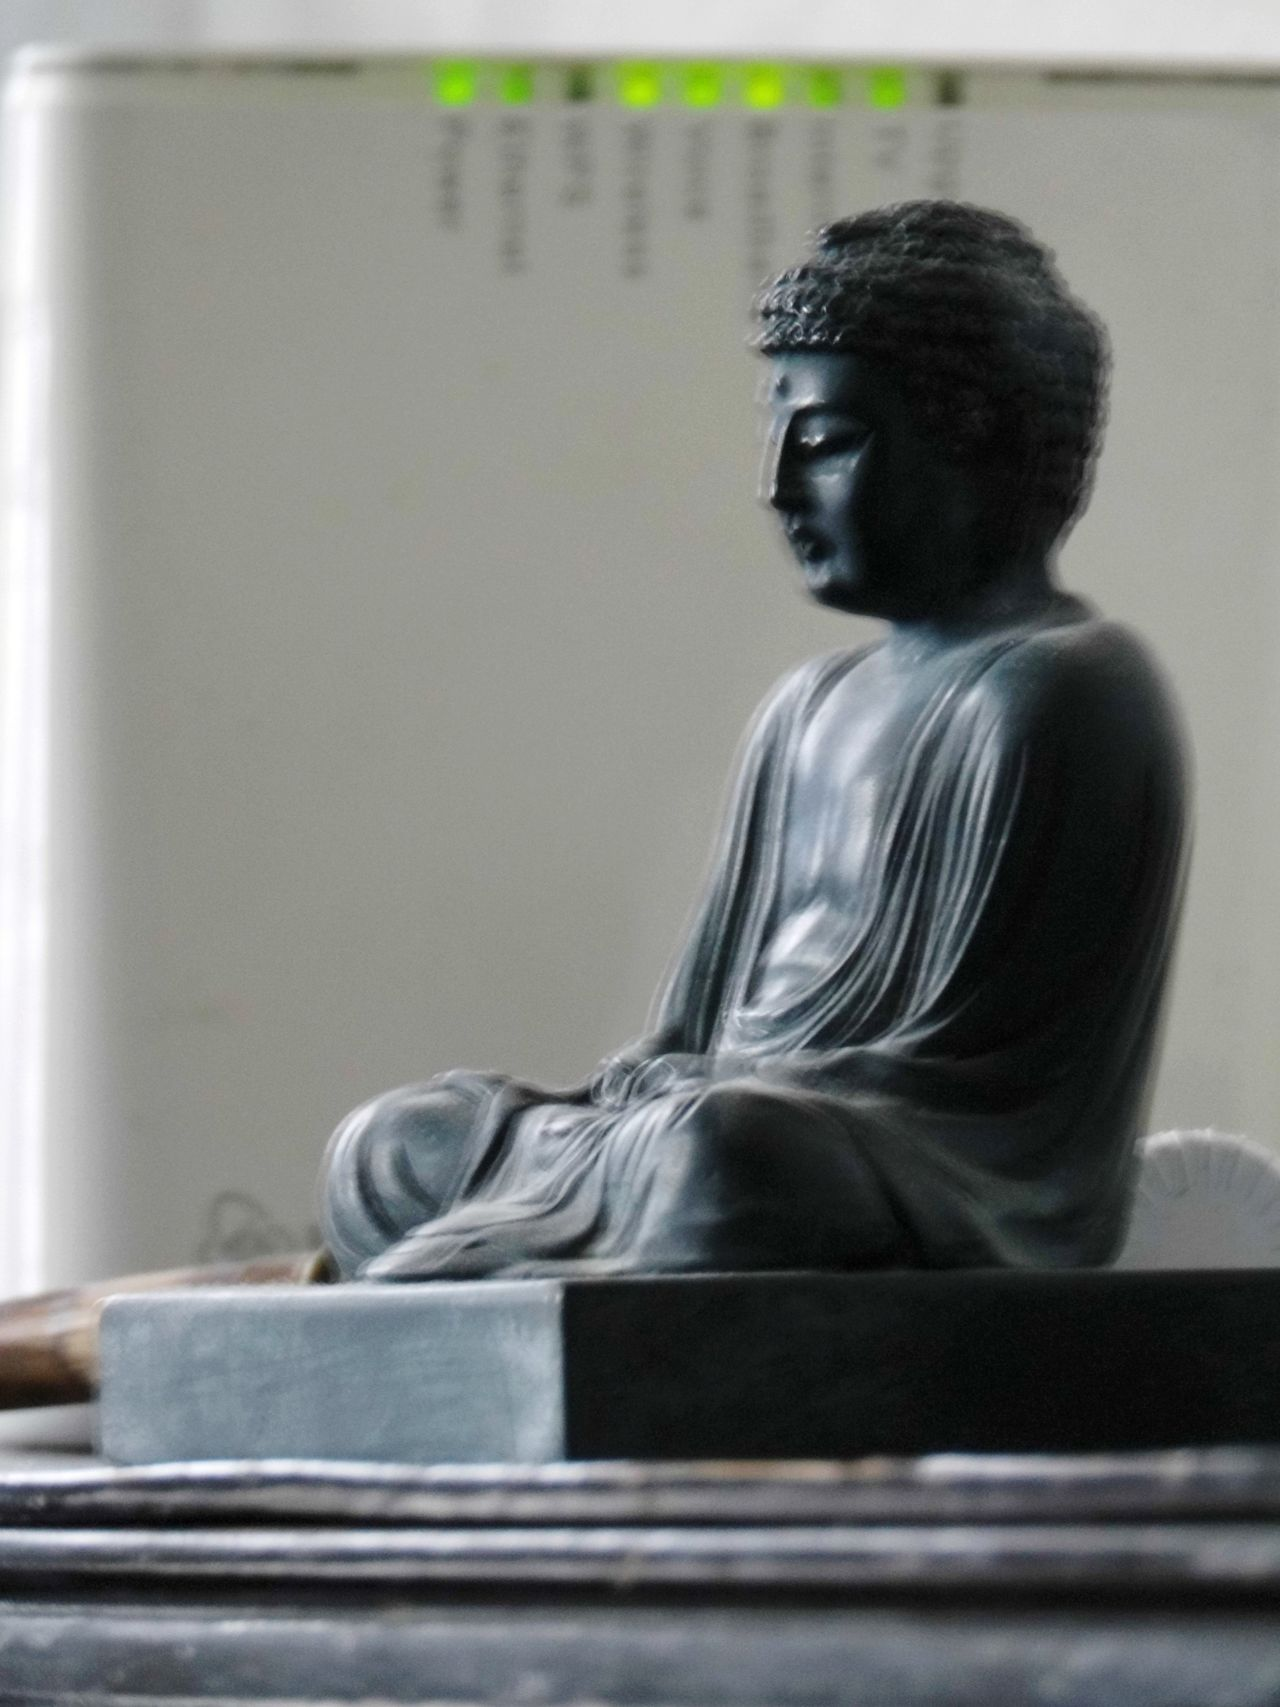 Buddha Shaping The Future. Together. Taking Photos Getting Inspired Meditation Modem